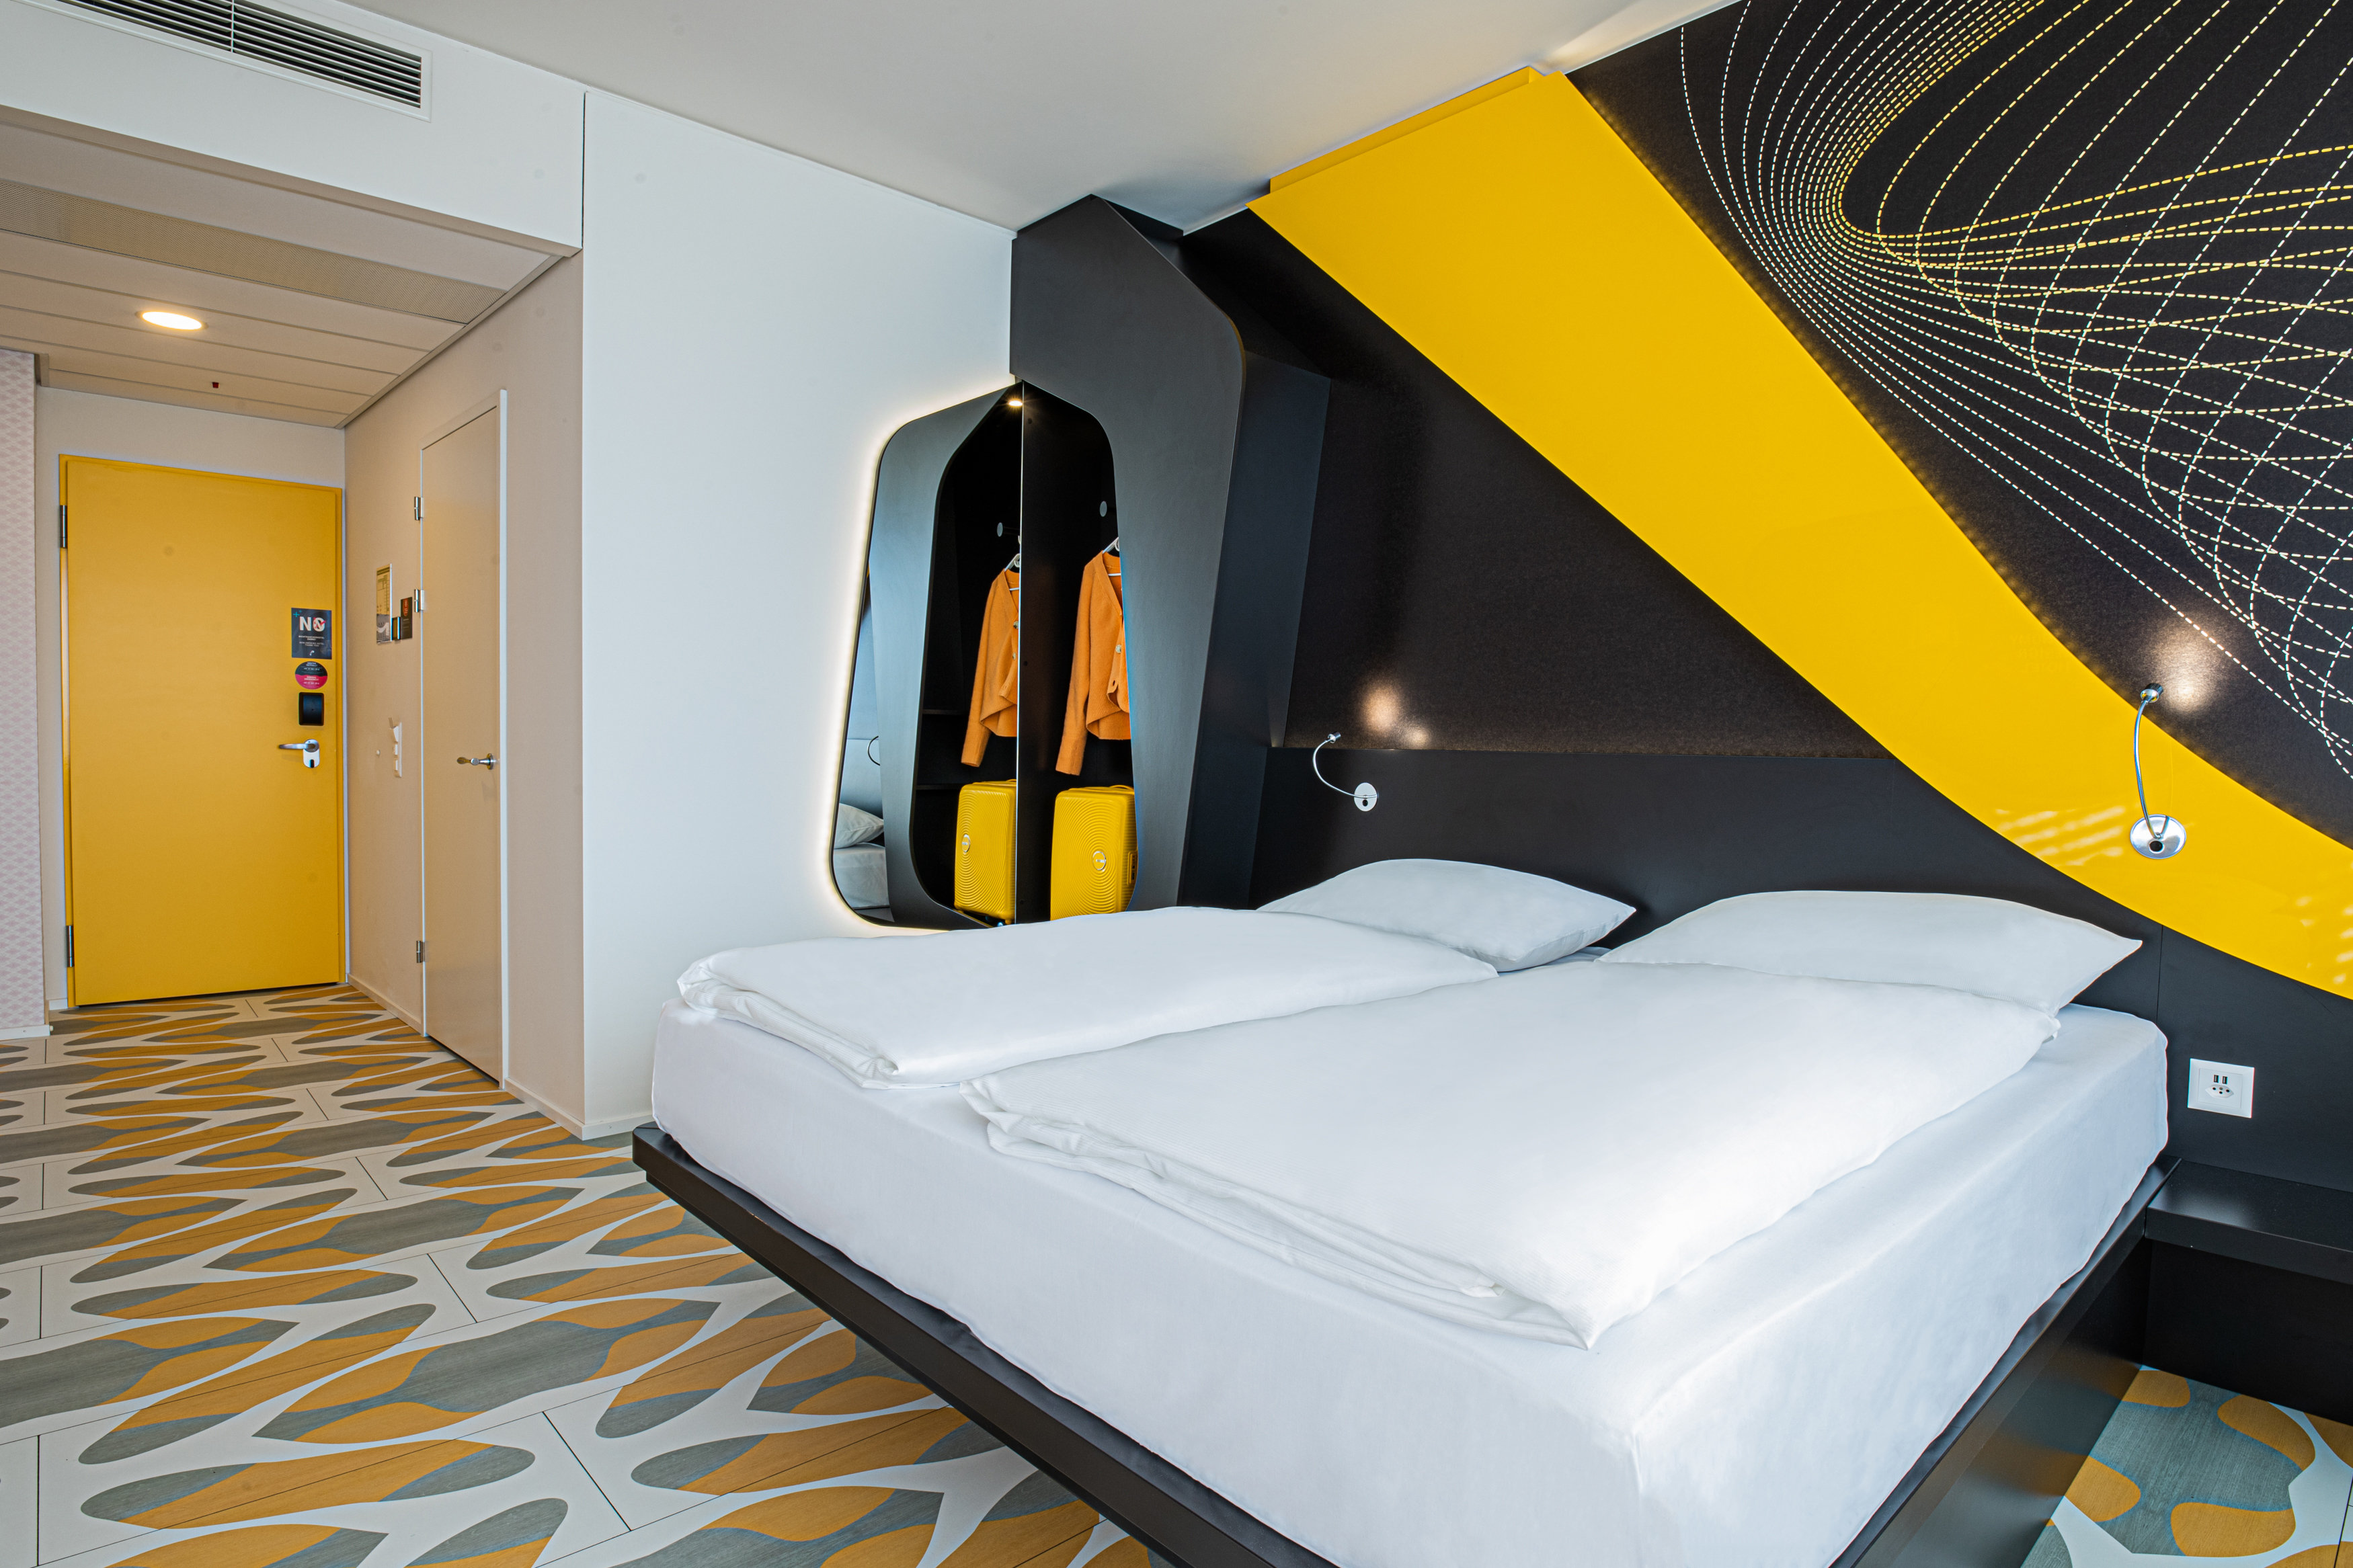 prizeotel Bern-City - Room, Bed